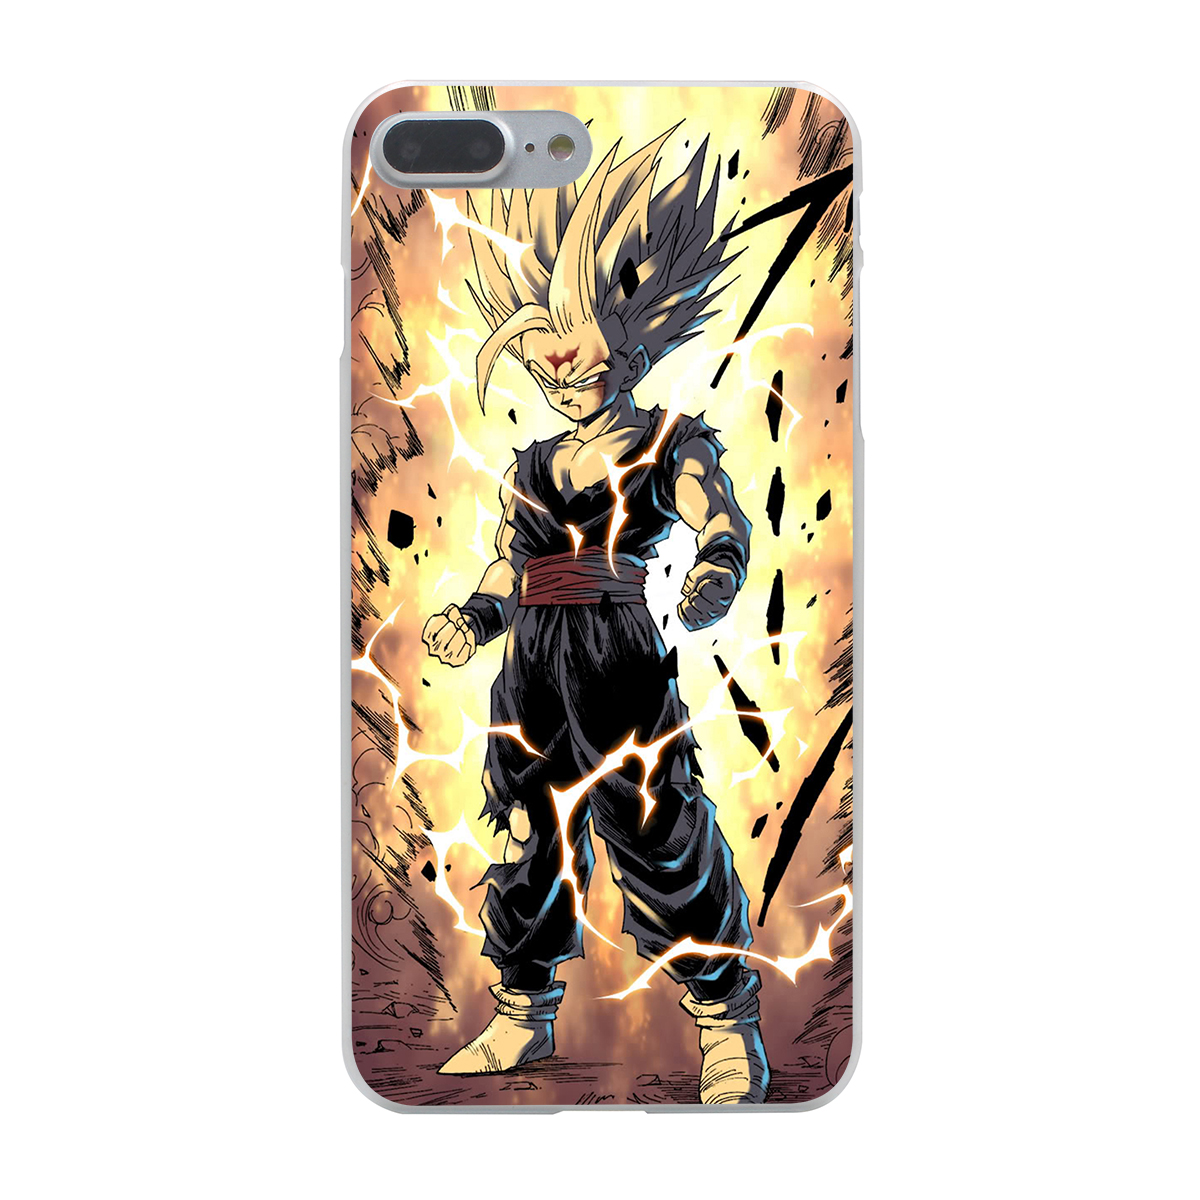 watch 73559 5df47 Lavaza Dragon Ball z super Goku Hard Phone Case for Apple iPhone 6 6s 7 8  Plus 4 4S 5 5S SE 5C Cover for iPhone XS Max XR Cases